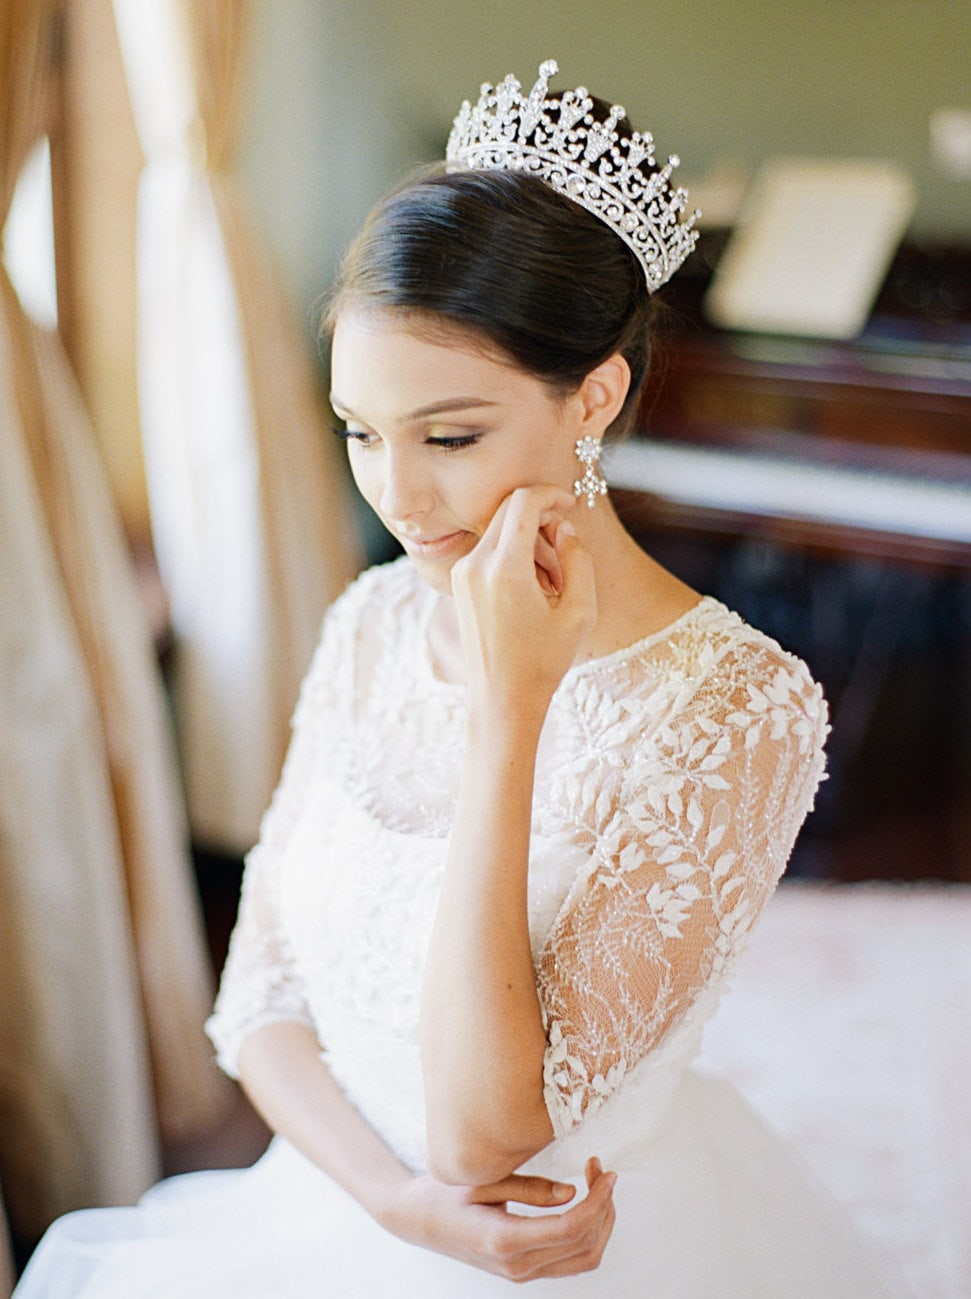 Fairytale bridal crowns tiaras from eden luxe bridal by southbound b portia silver bridal diadem junglespirit Gallery